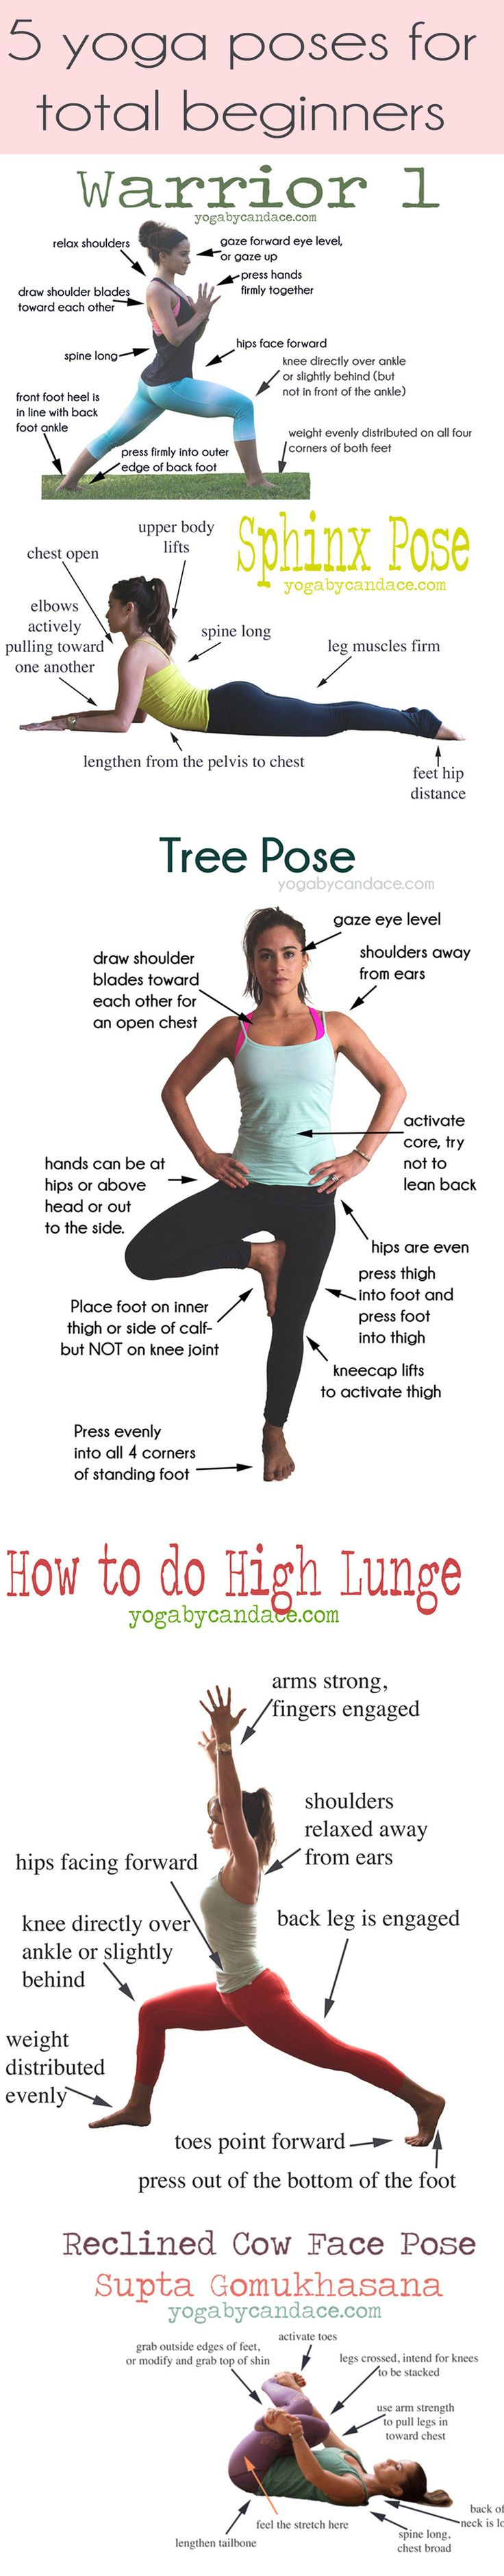 5 yoga poses for beginners